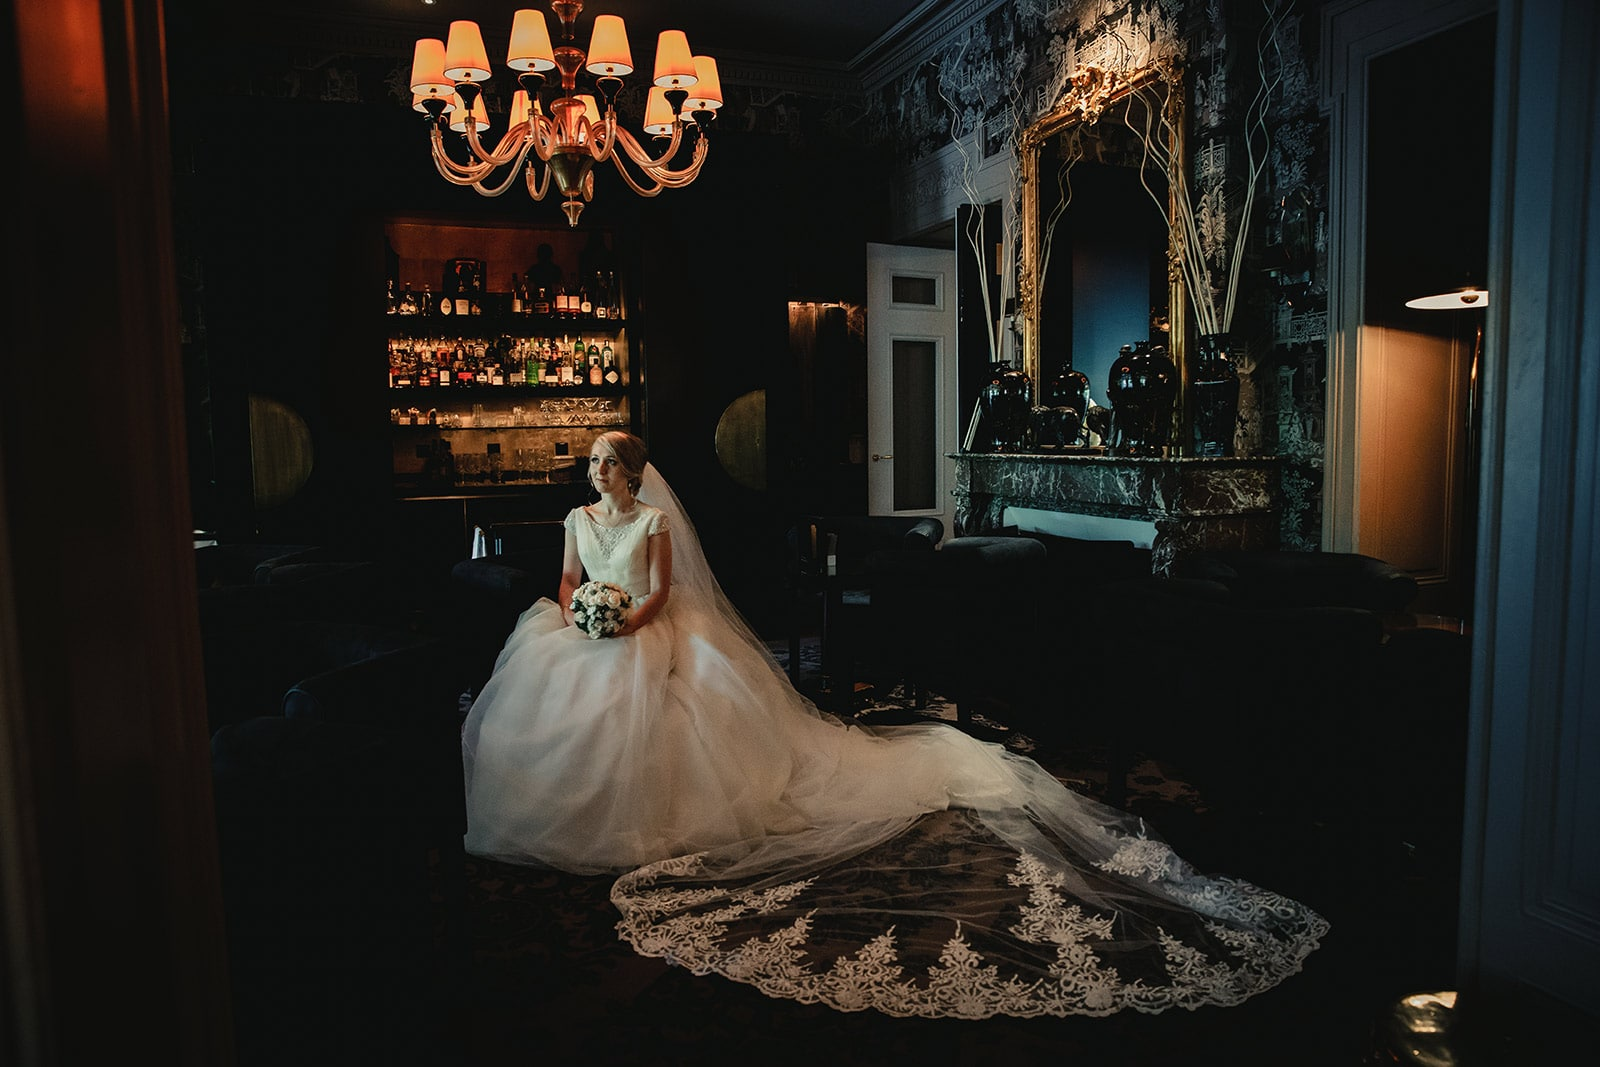 How to choose your wedding photographer 2018 2019 Best Wedding Photographer comment choisir son photographe de mariage 2018 2019 meilleur photographe de mariageLyon Photographe mariage Lyon Photographe reportage mariage Lyon